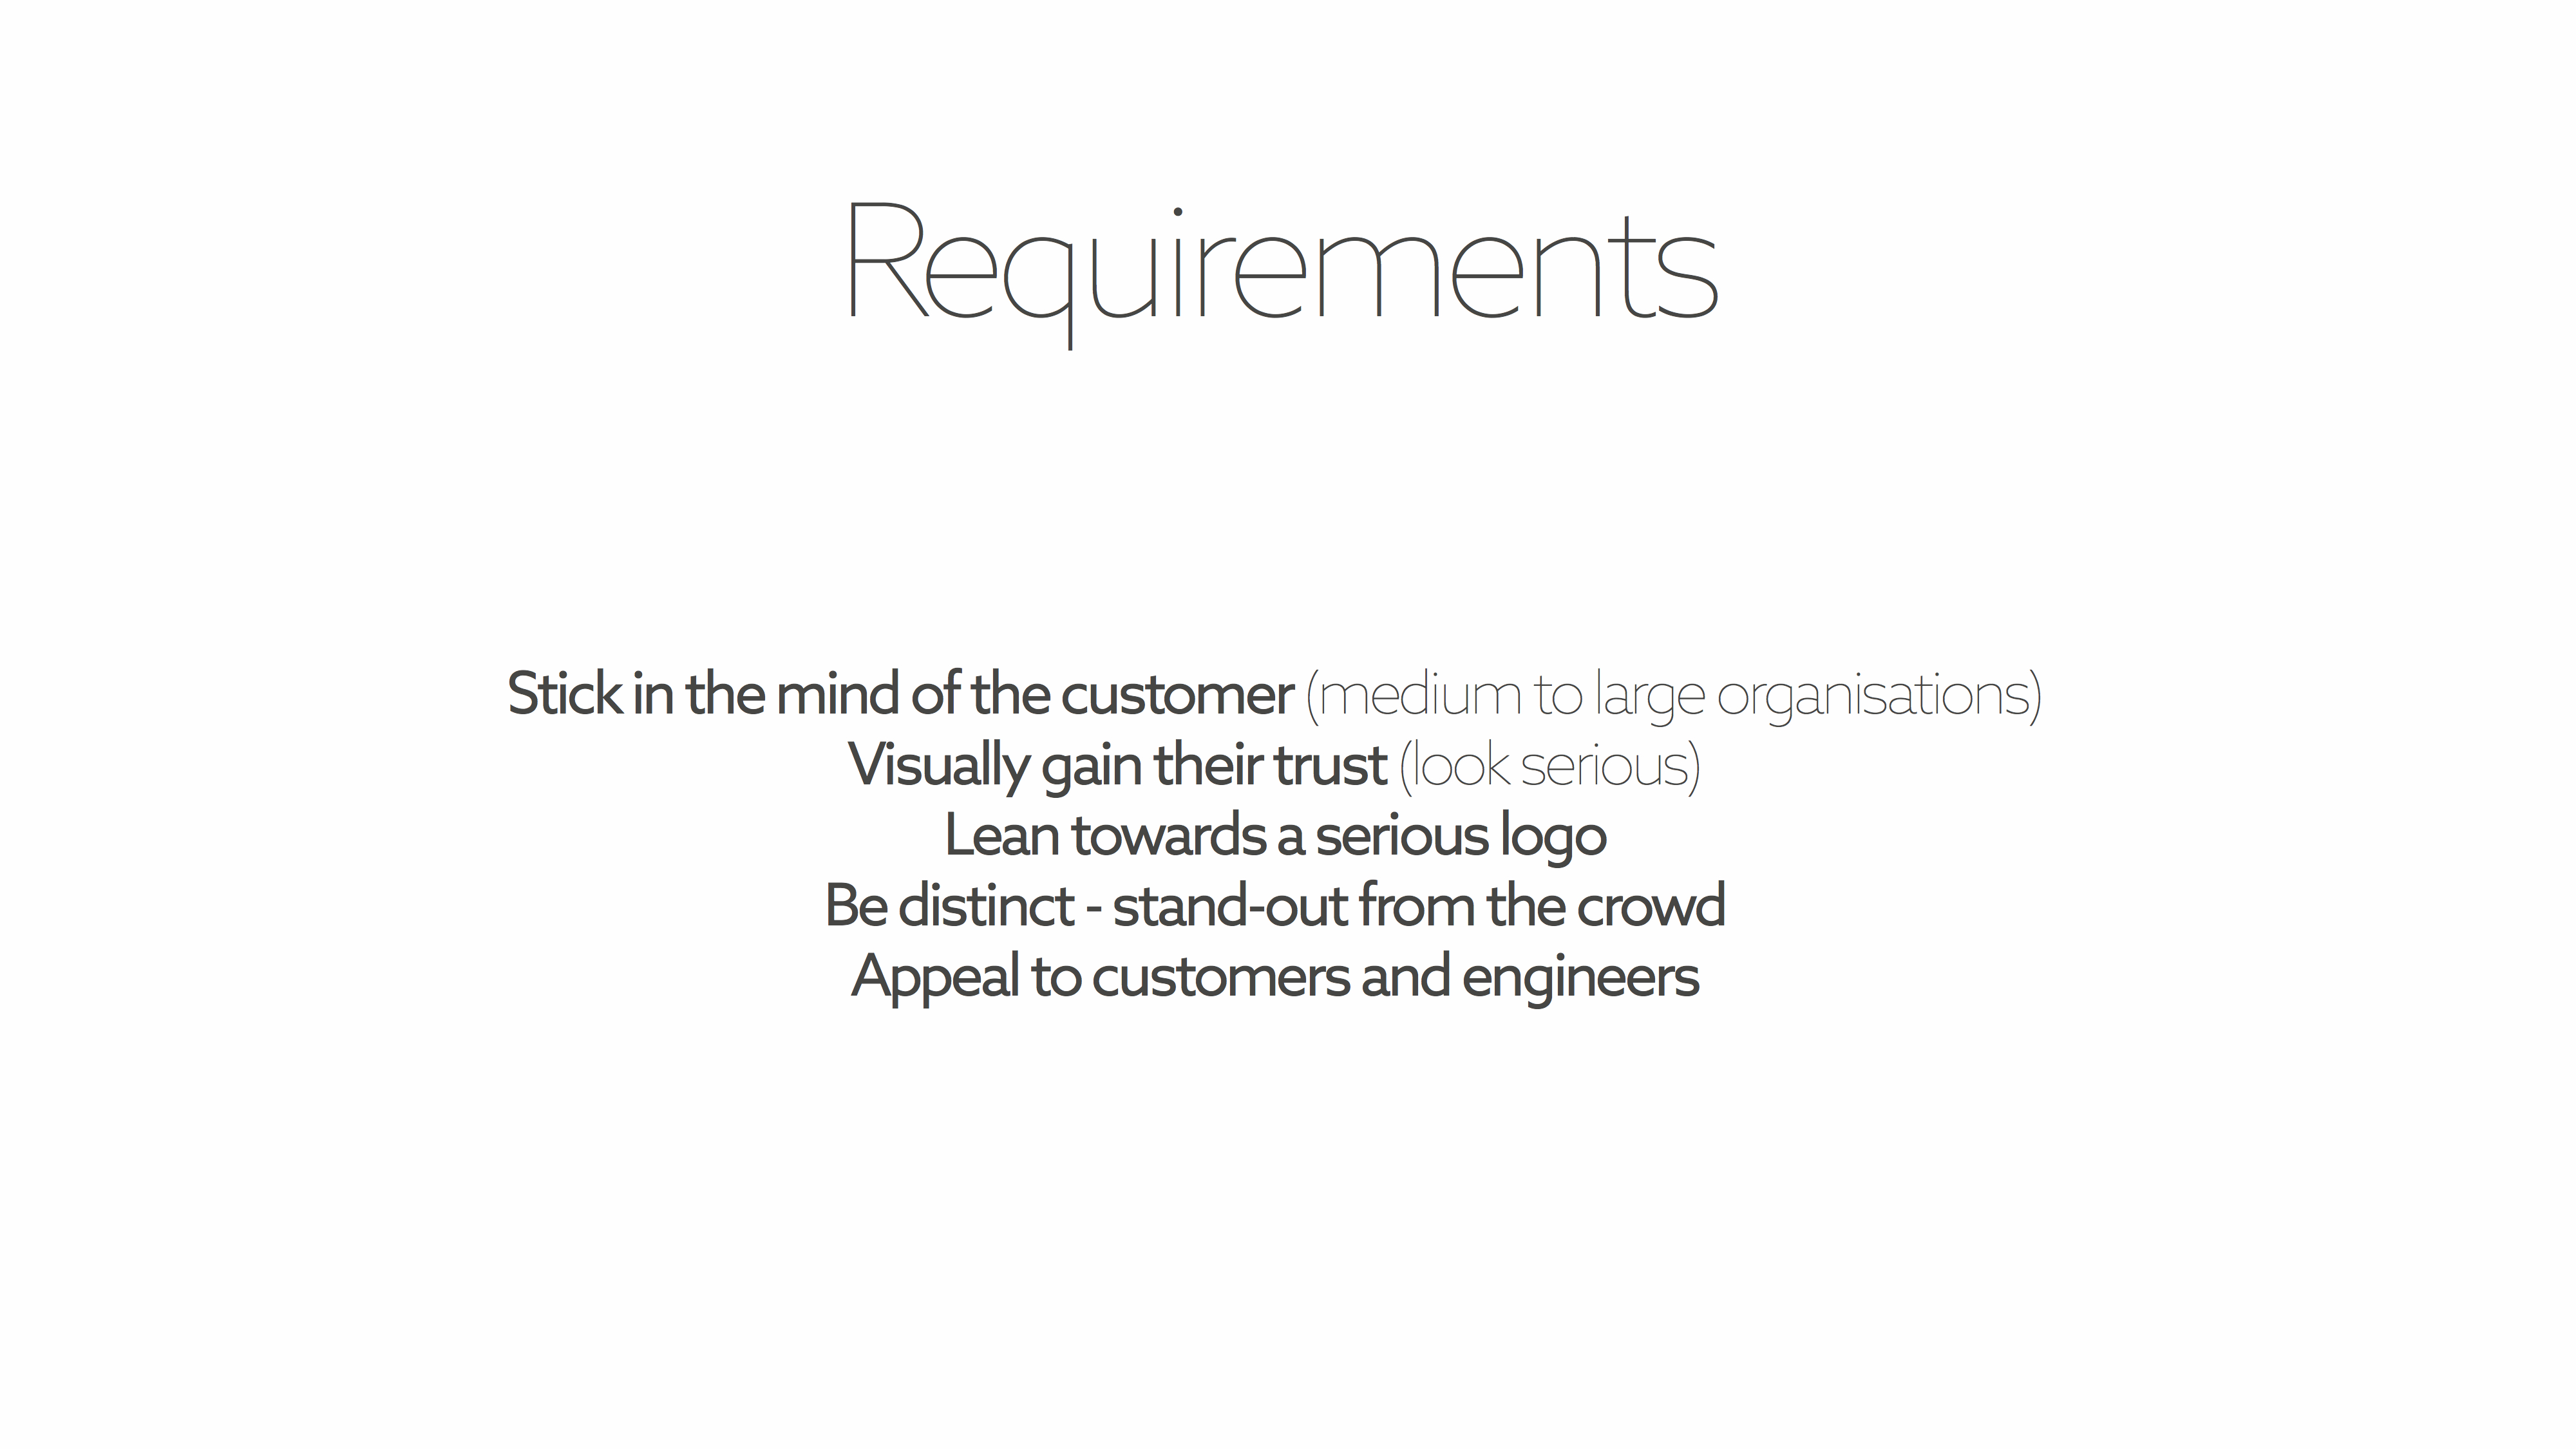 Requirements slide